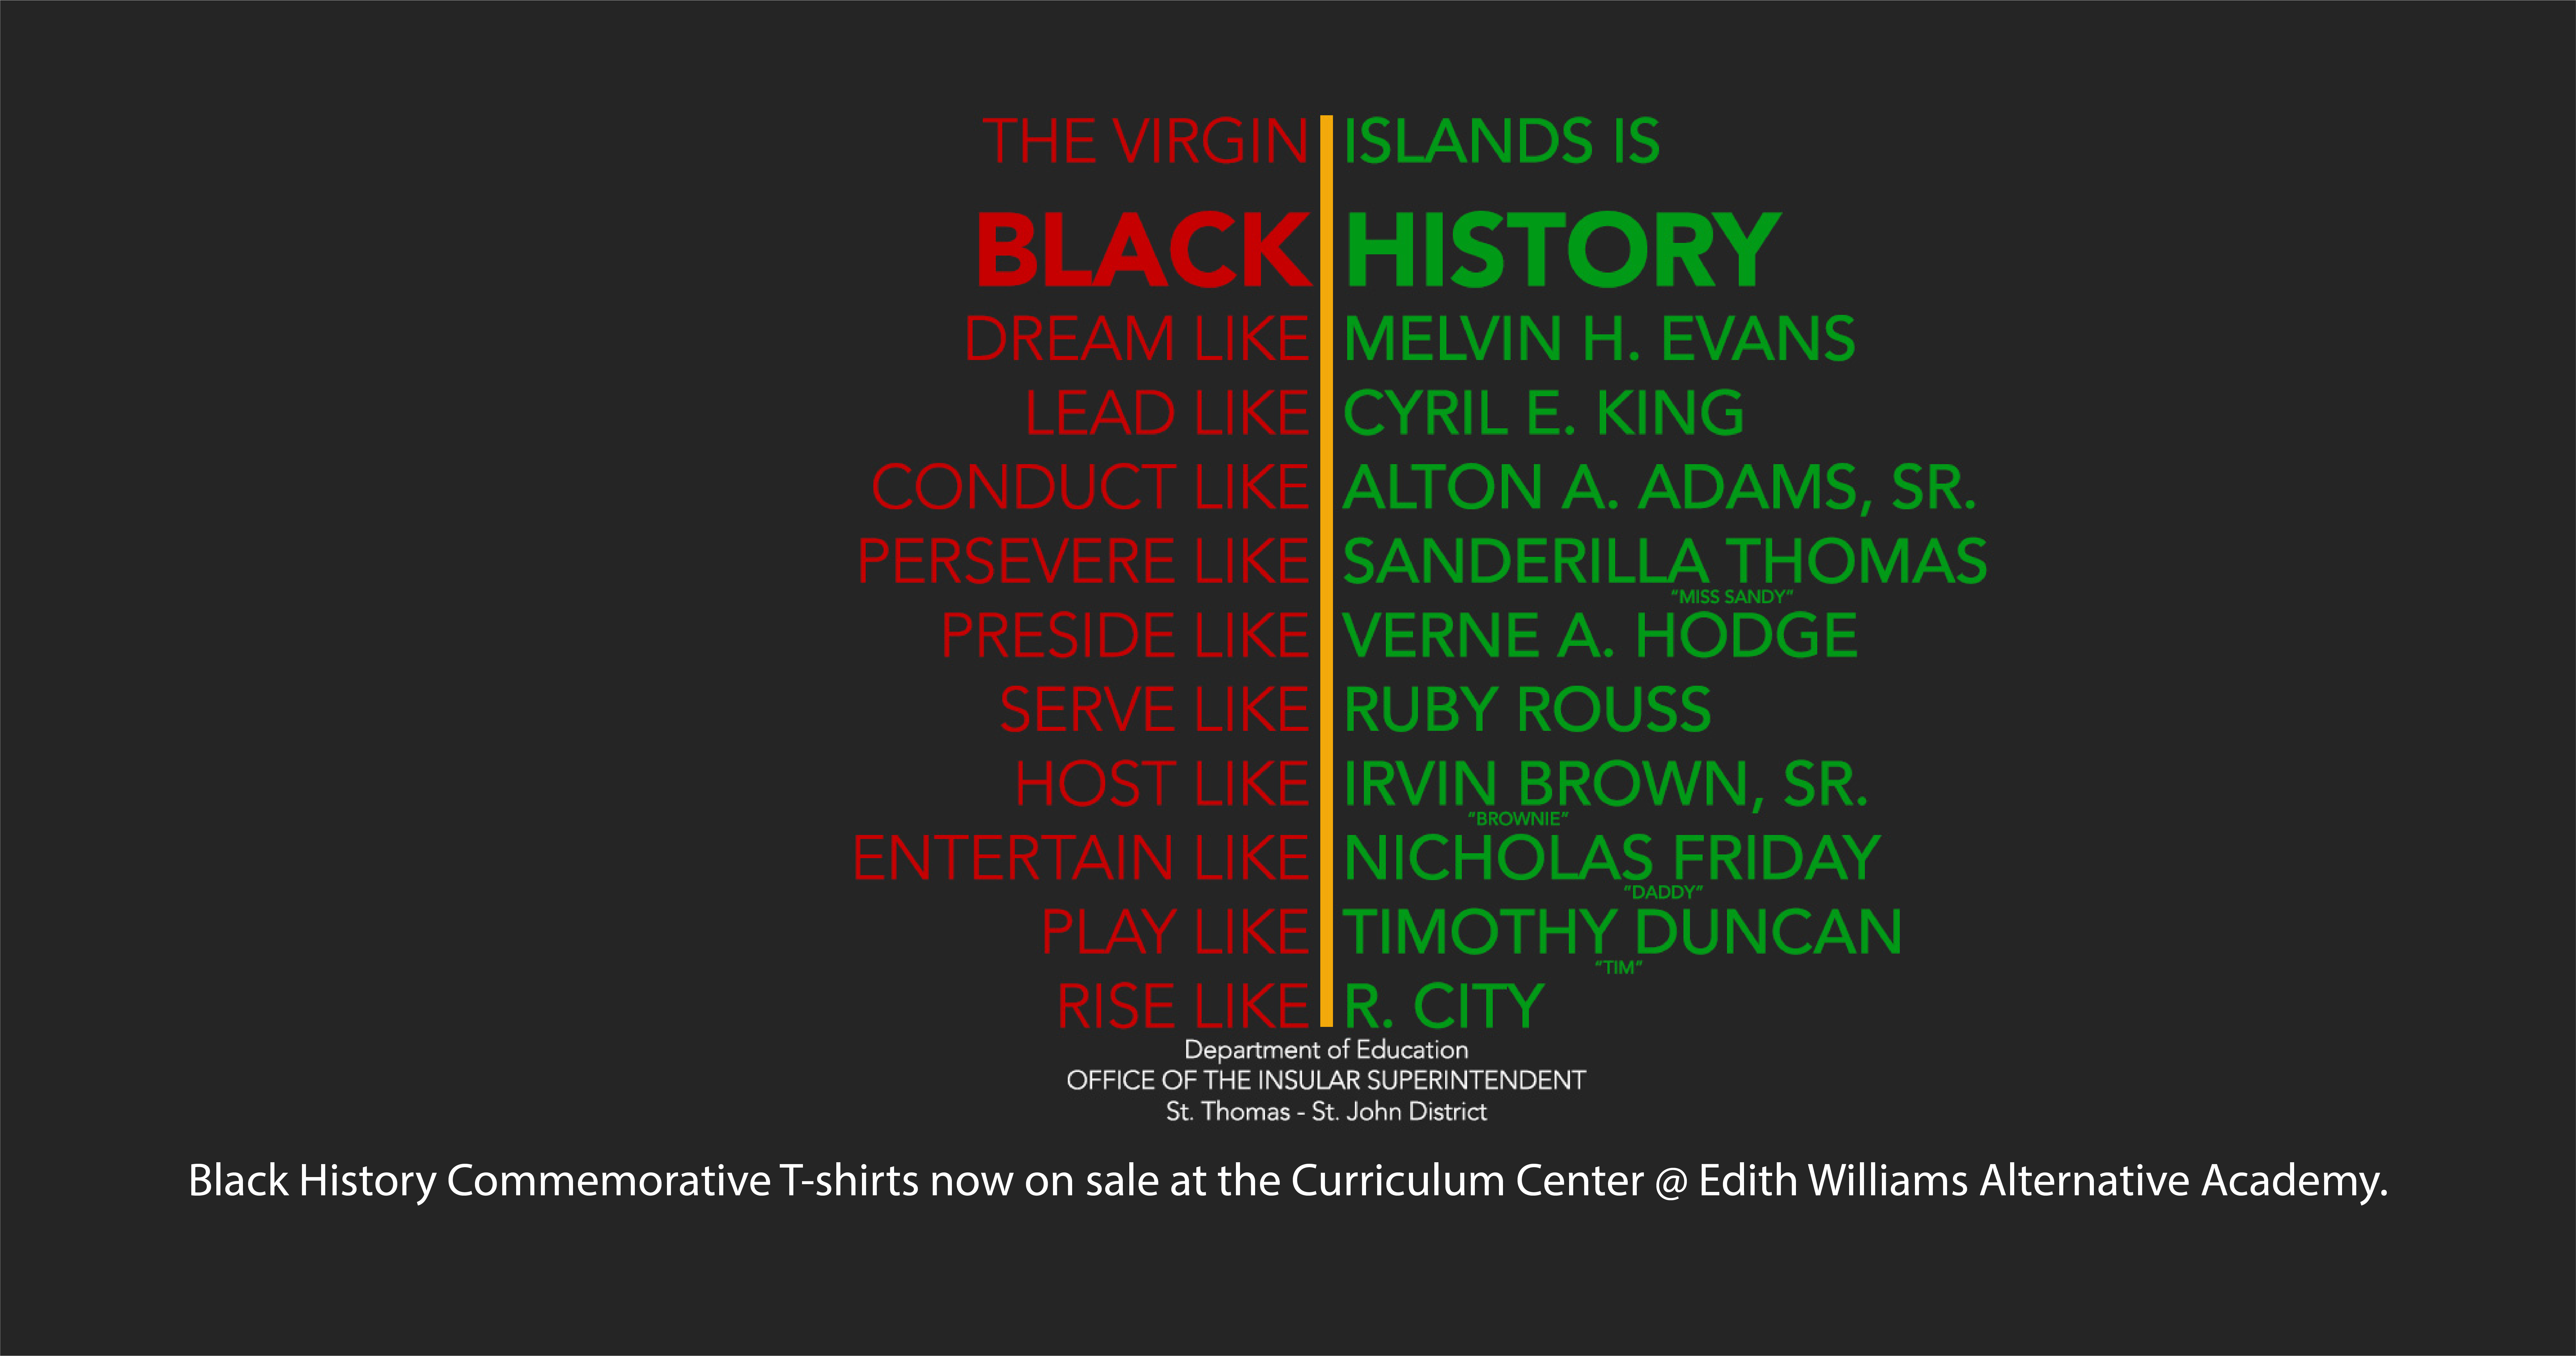 Get Your Black History Commemorative T-Shirt Today!